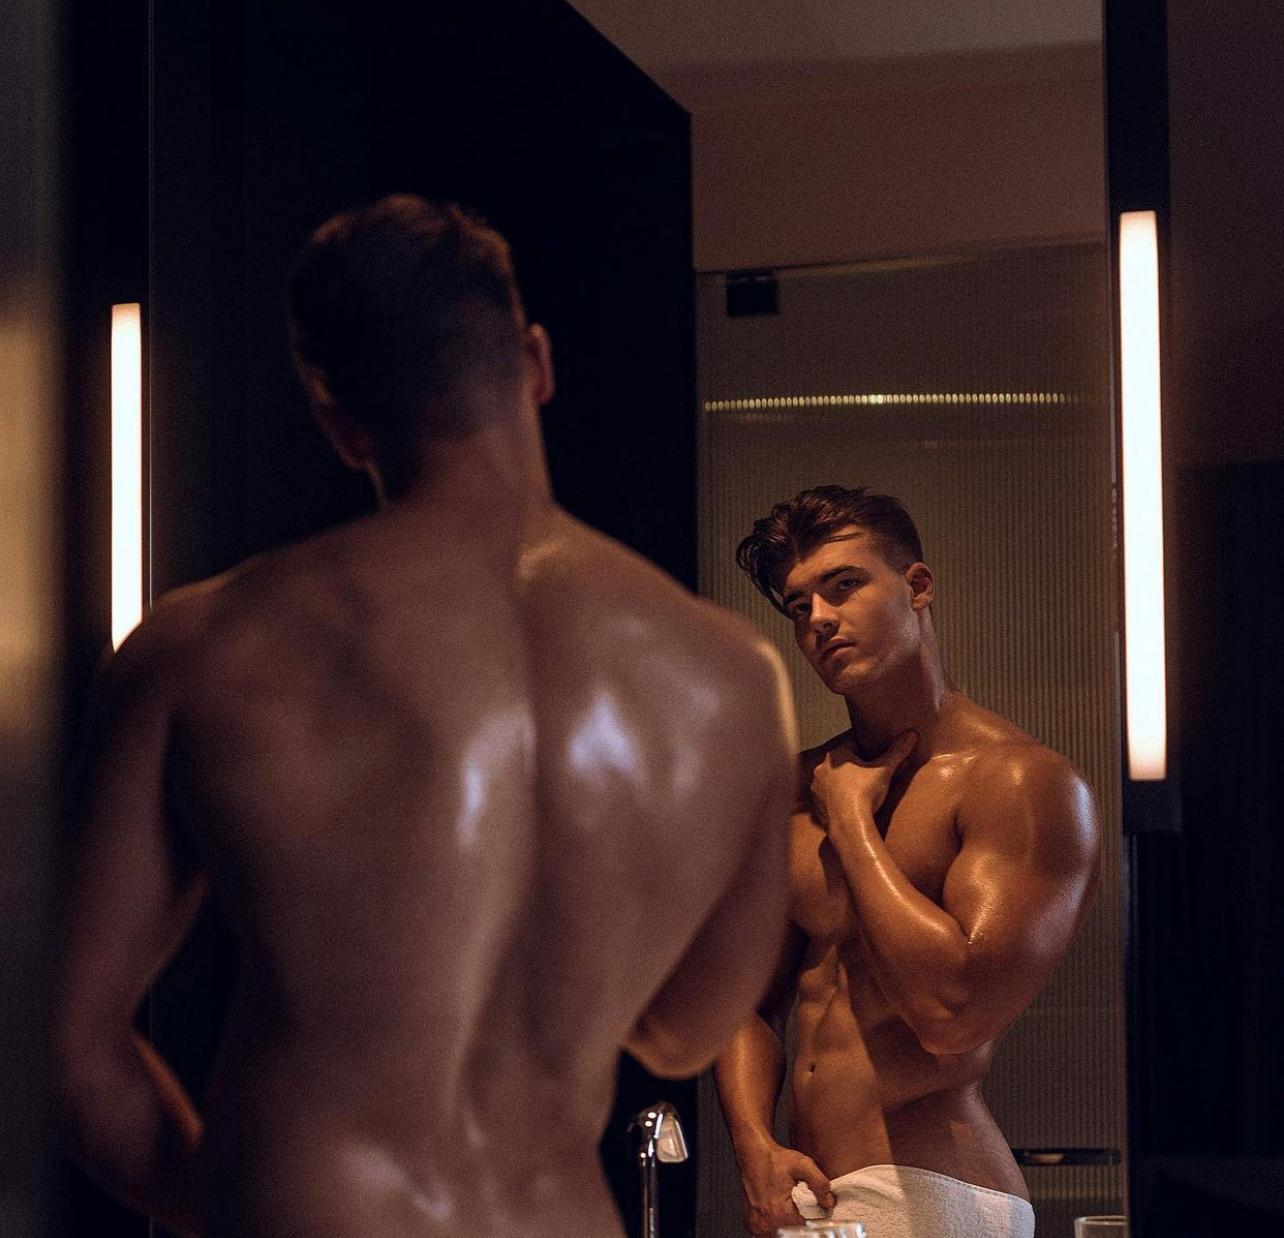 The Biggest Male Onlyfans Creator On His Big Future Plans